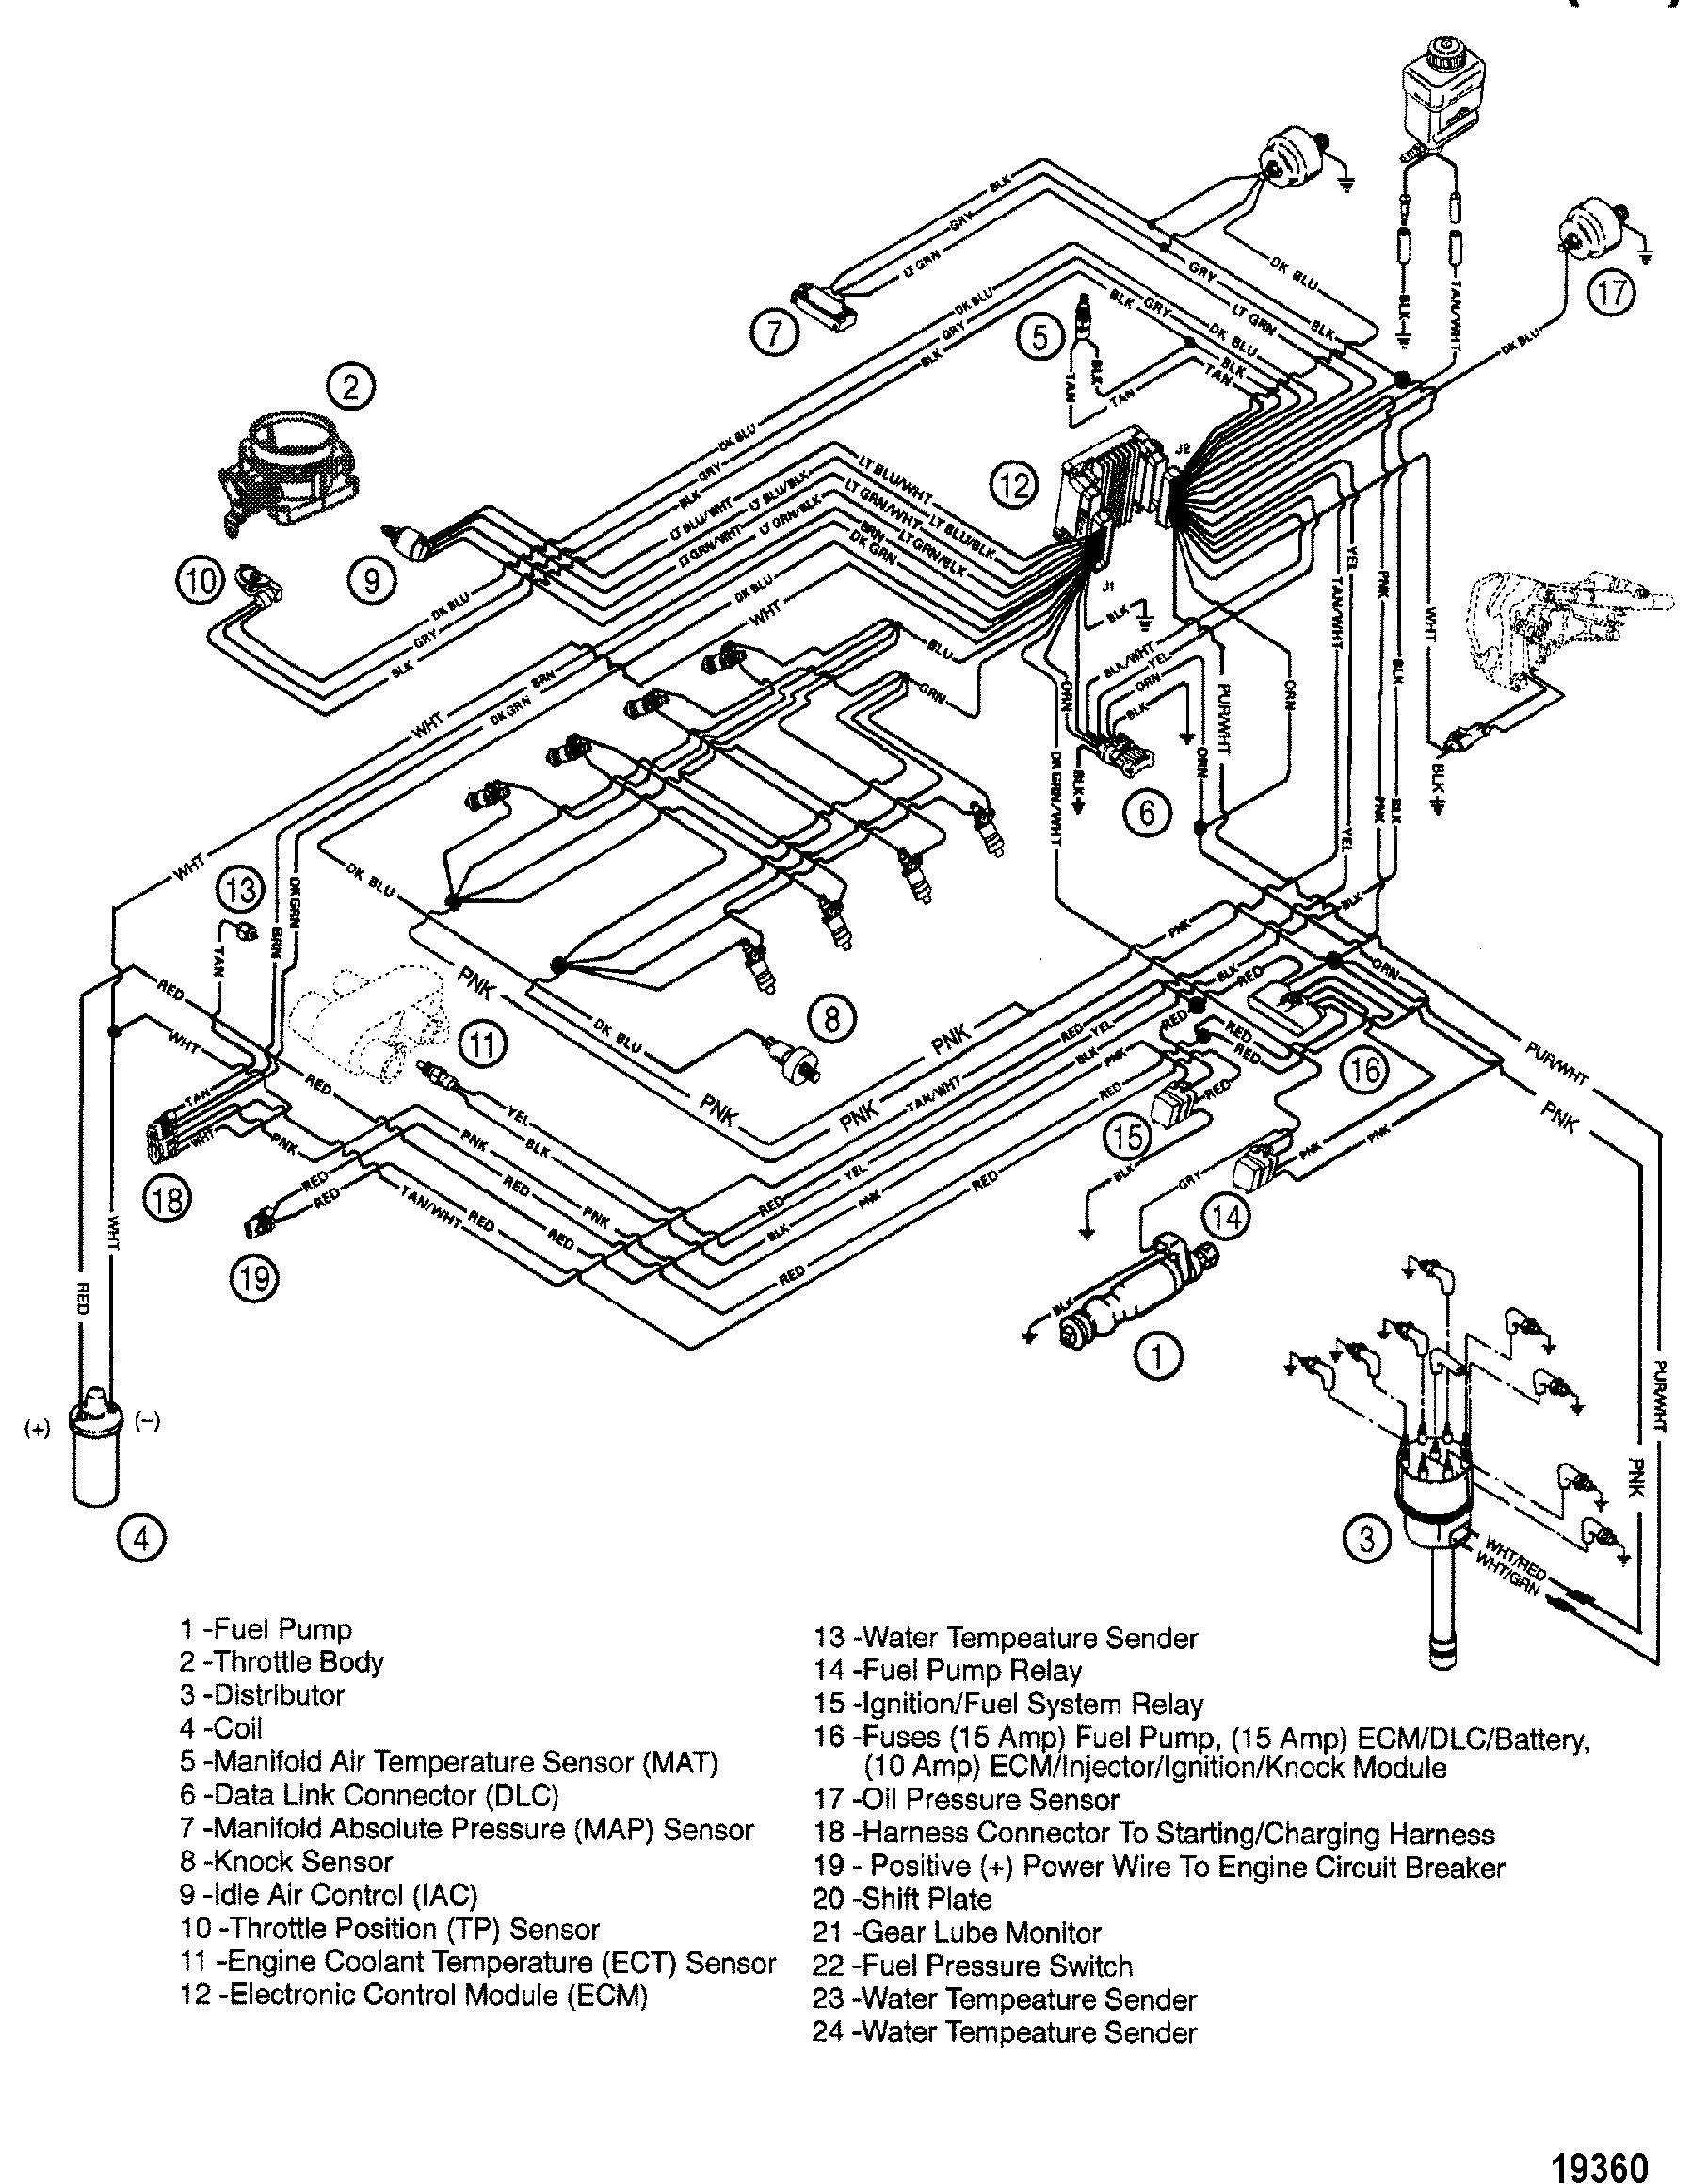 mercruiser 4 3 wiring harness mercruiser image mercruiser 350 wiring harness mercruiser automotive wiring diagrams on mercruiser 4 3 wiring harness